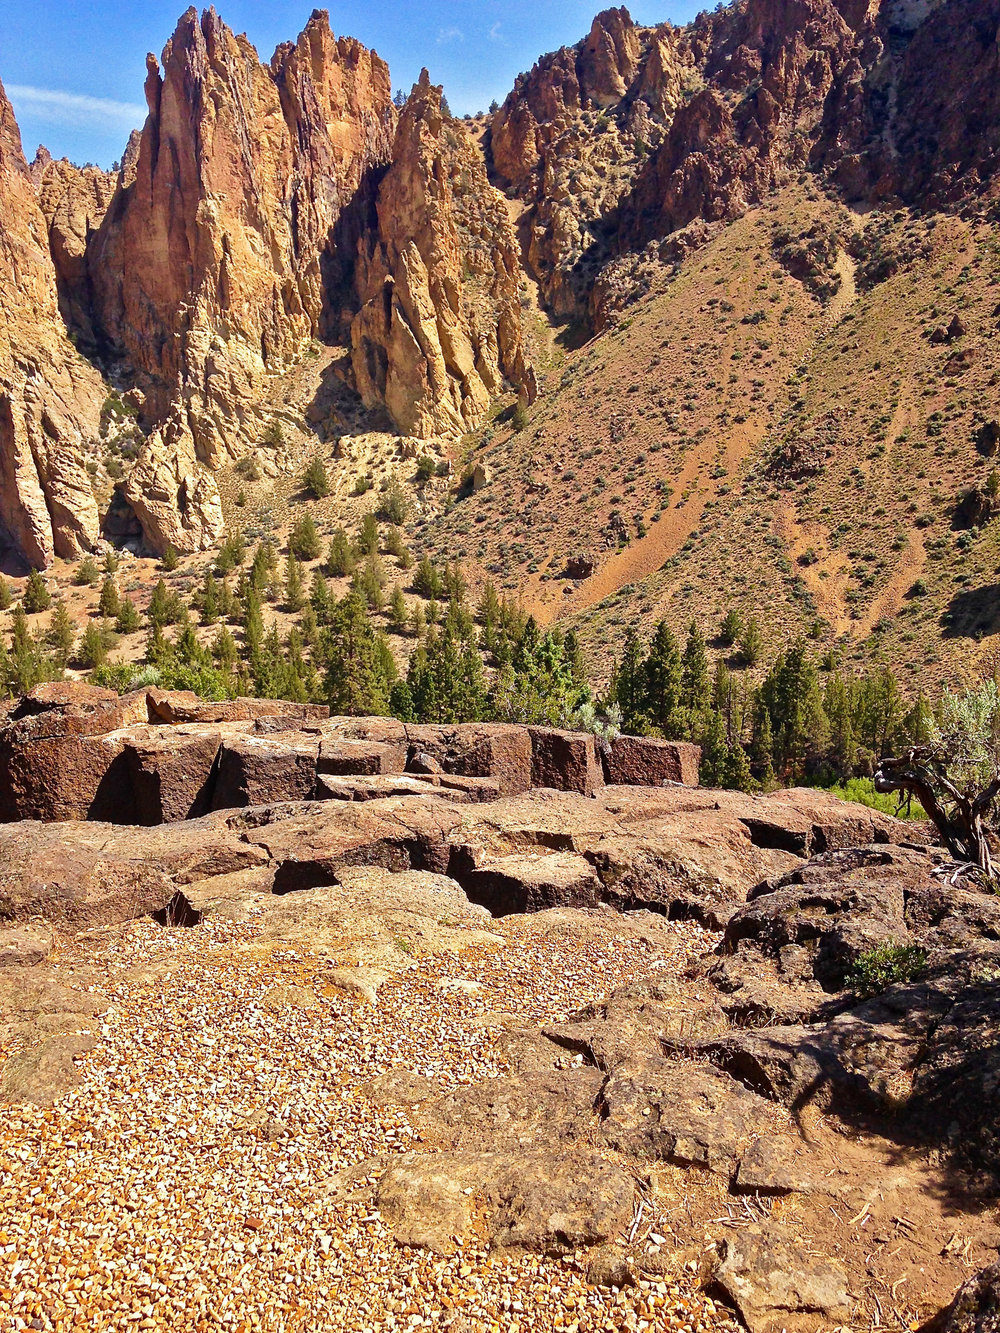 Northern Point ridge of basalt columns over the Gorge at Smith Rock State Park